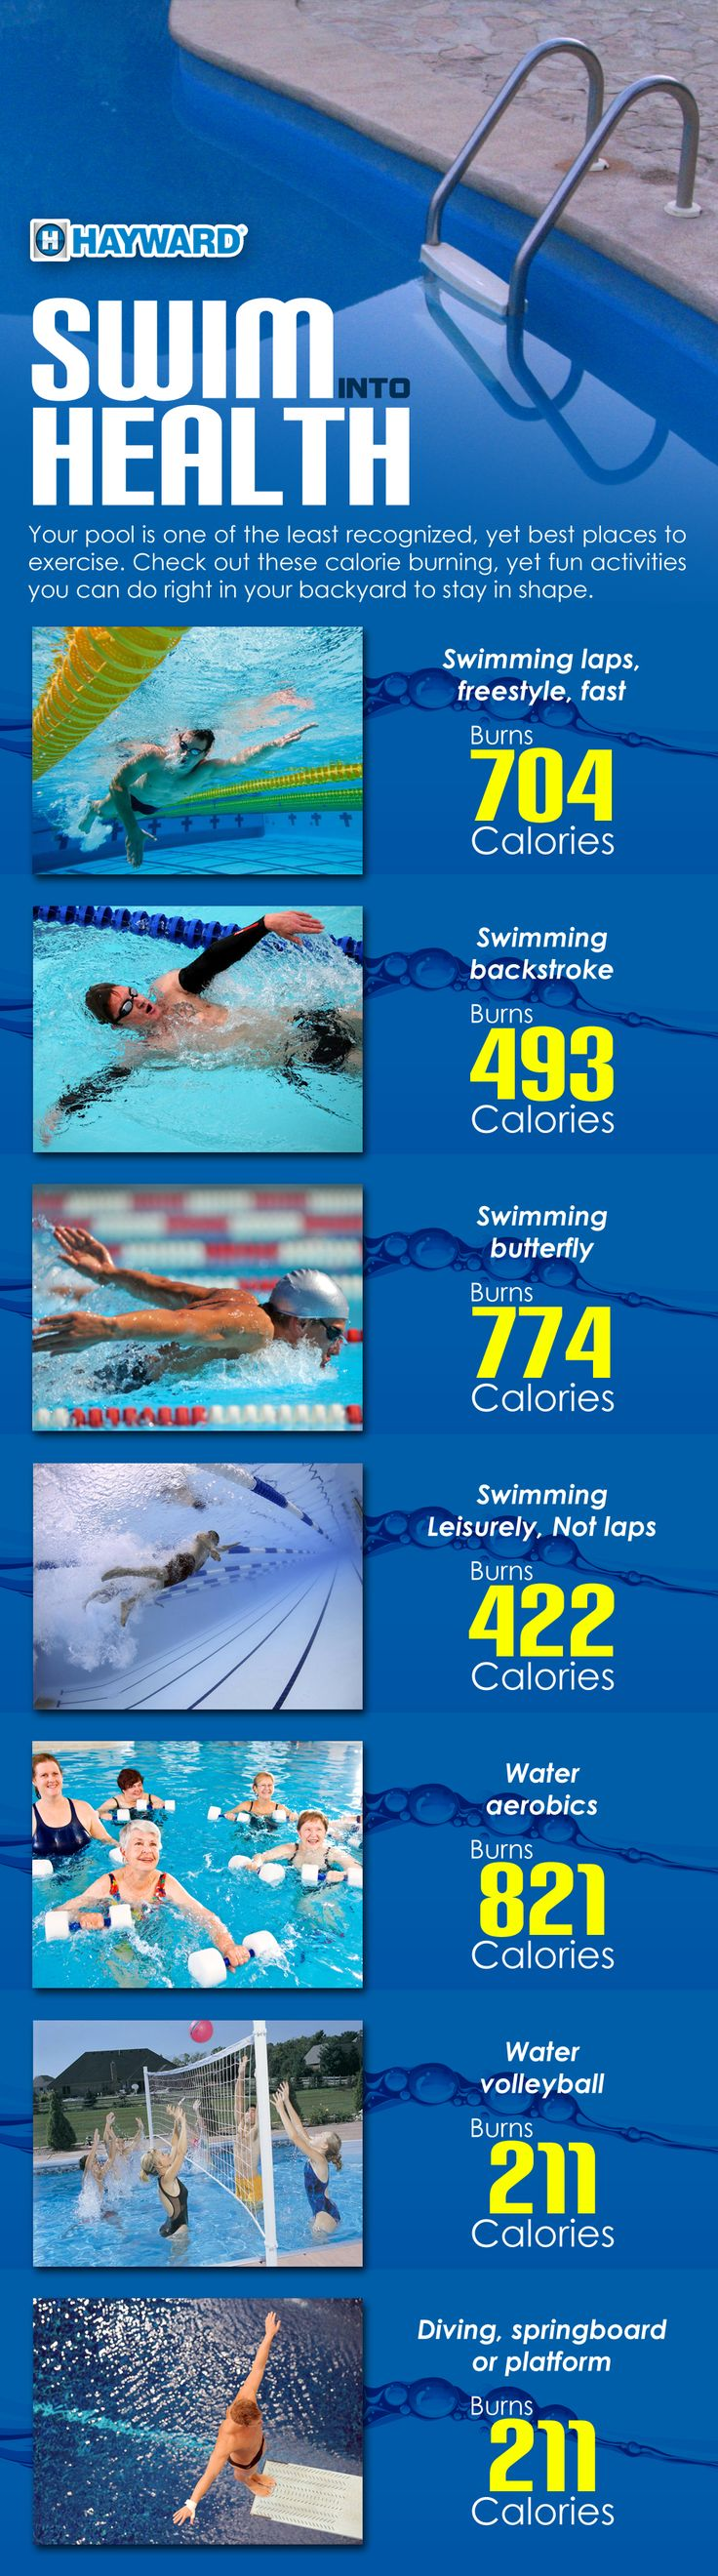 Swimming and aquatic games are great ways to burn calories and stay in shape.  Check out this great infographic to see just how many calories you can burn.